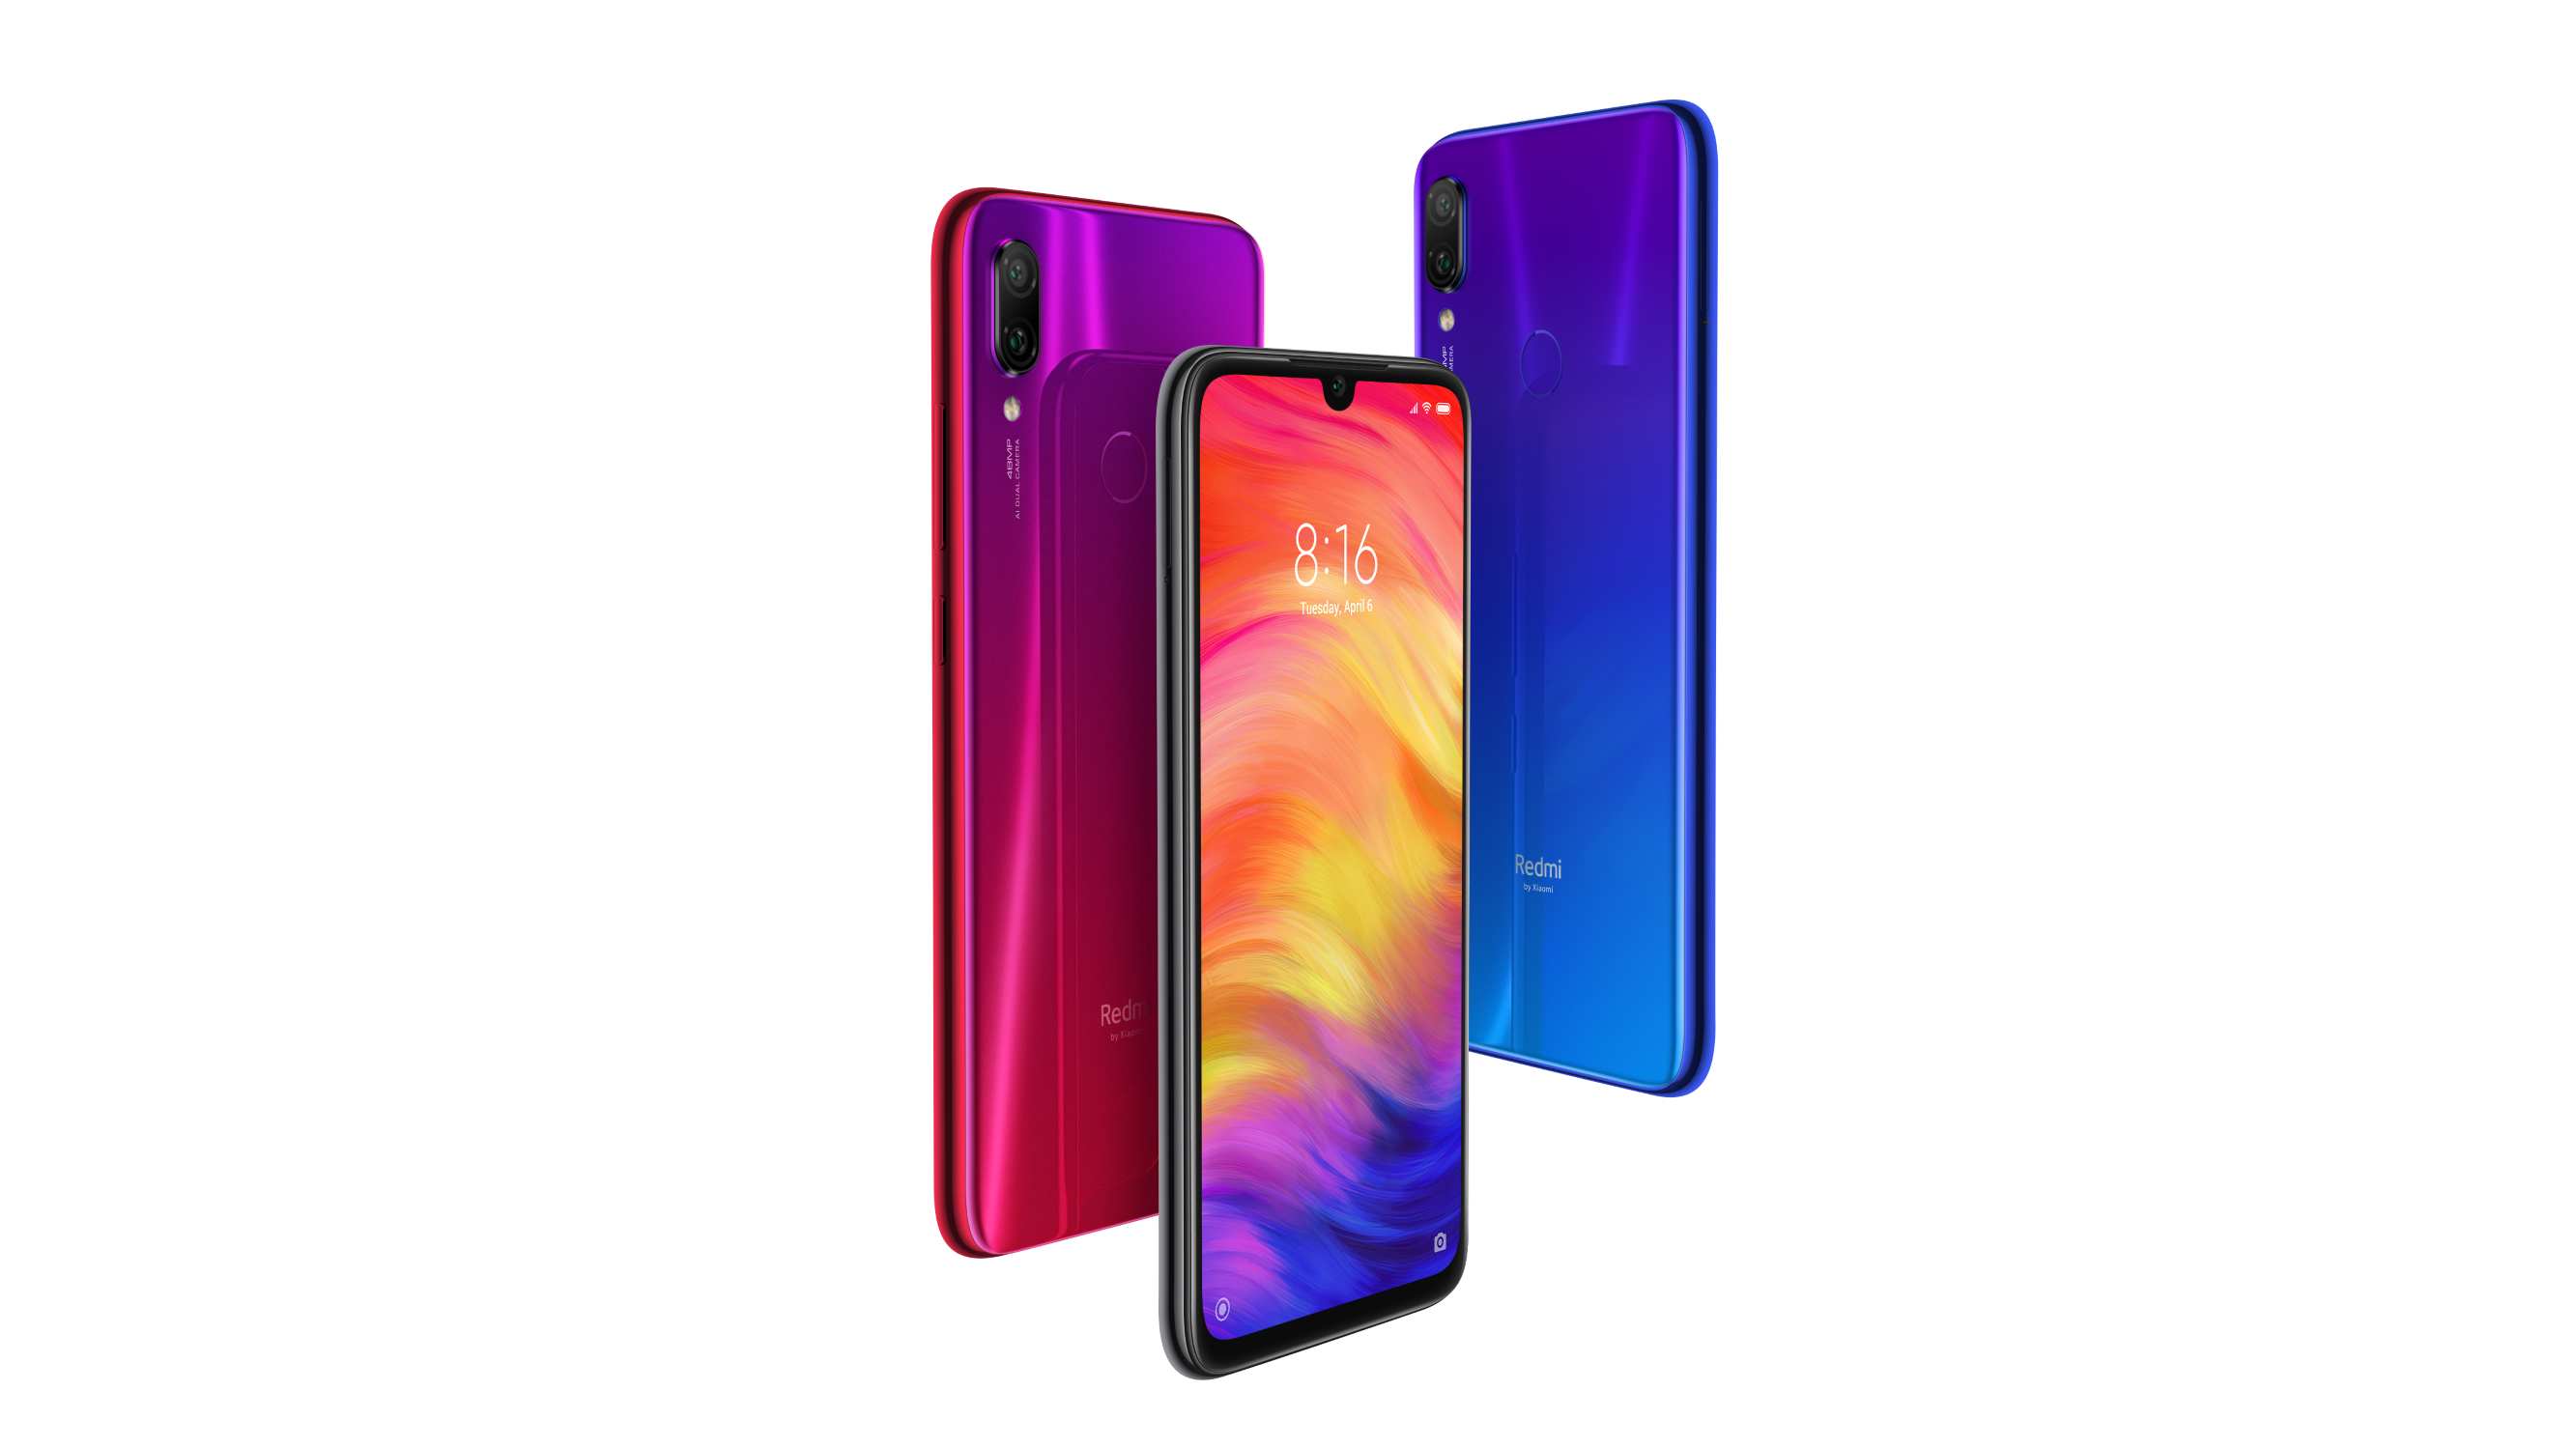 Xiaomi Redmi Note 7 Pro Sees Its Global Debut In India Along With